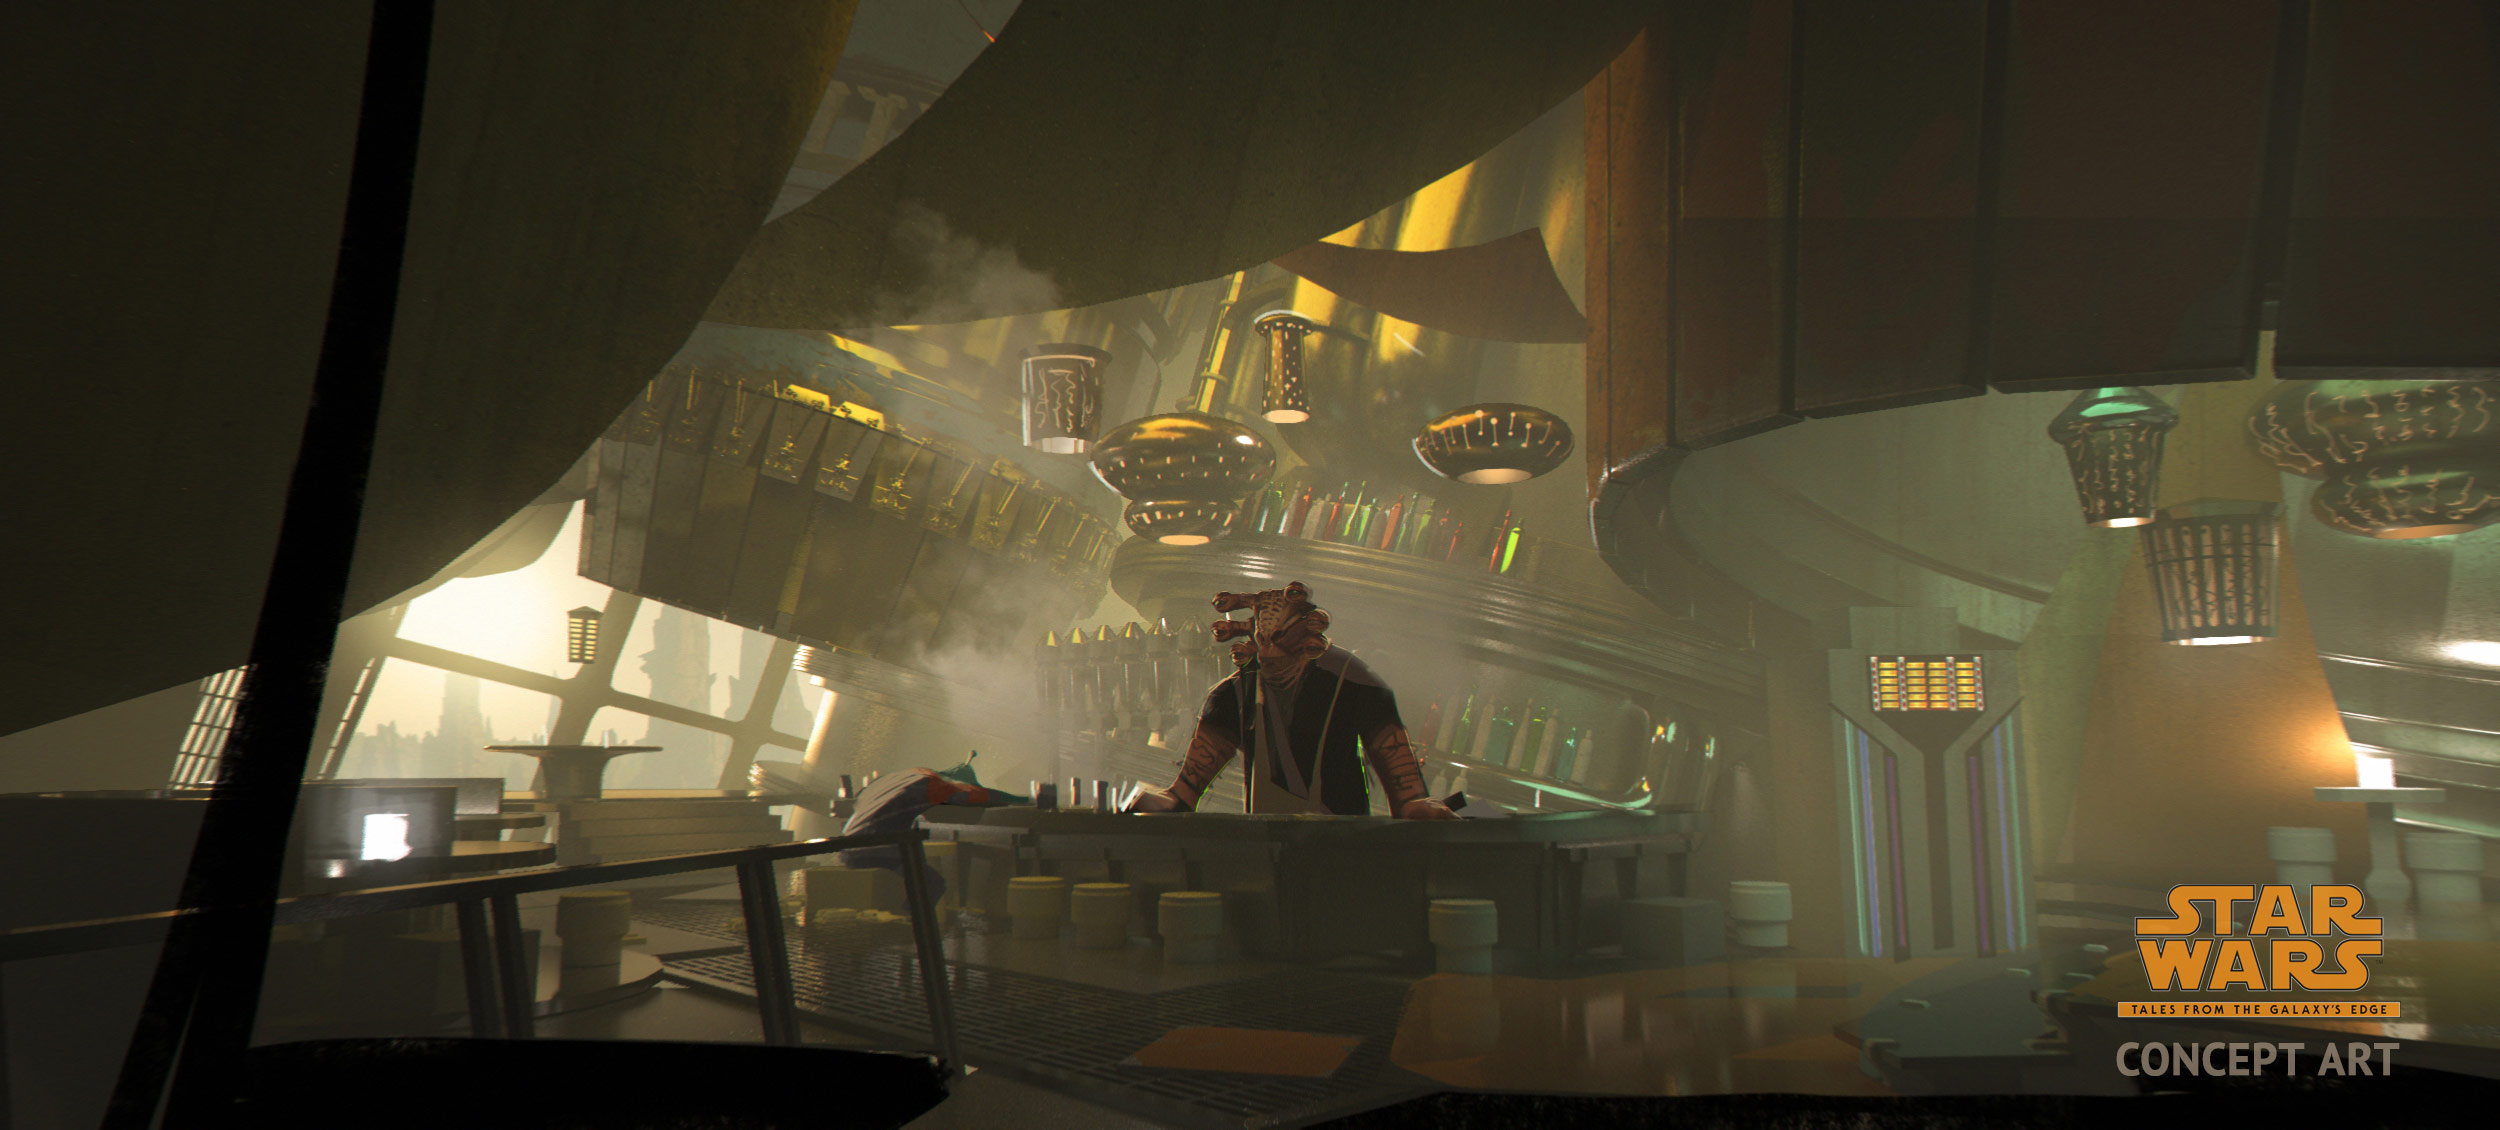 A concept art of Seezelslak's cantina: an Azumel alien standing behind the bar with a smoky/hazy environment, and what looks like a grimy but comfortable setting to sit down and hear a story.